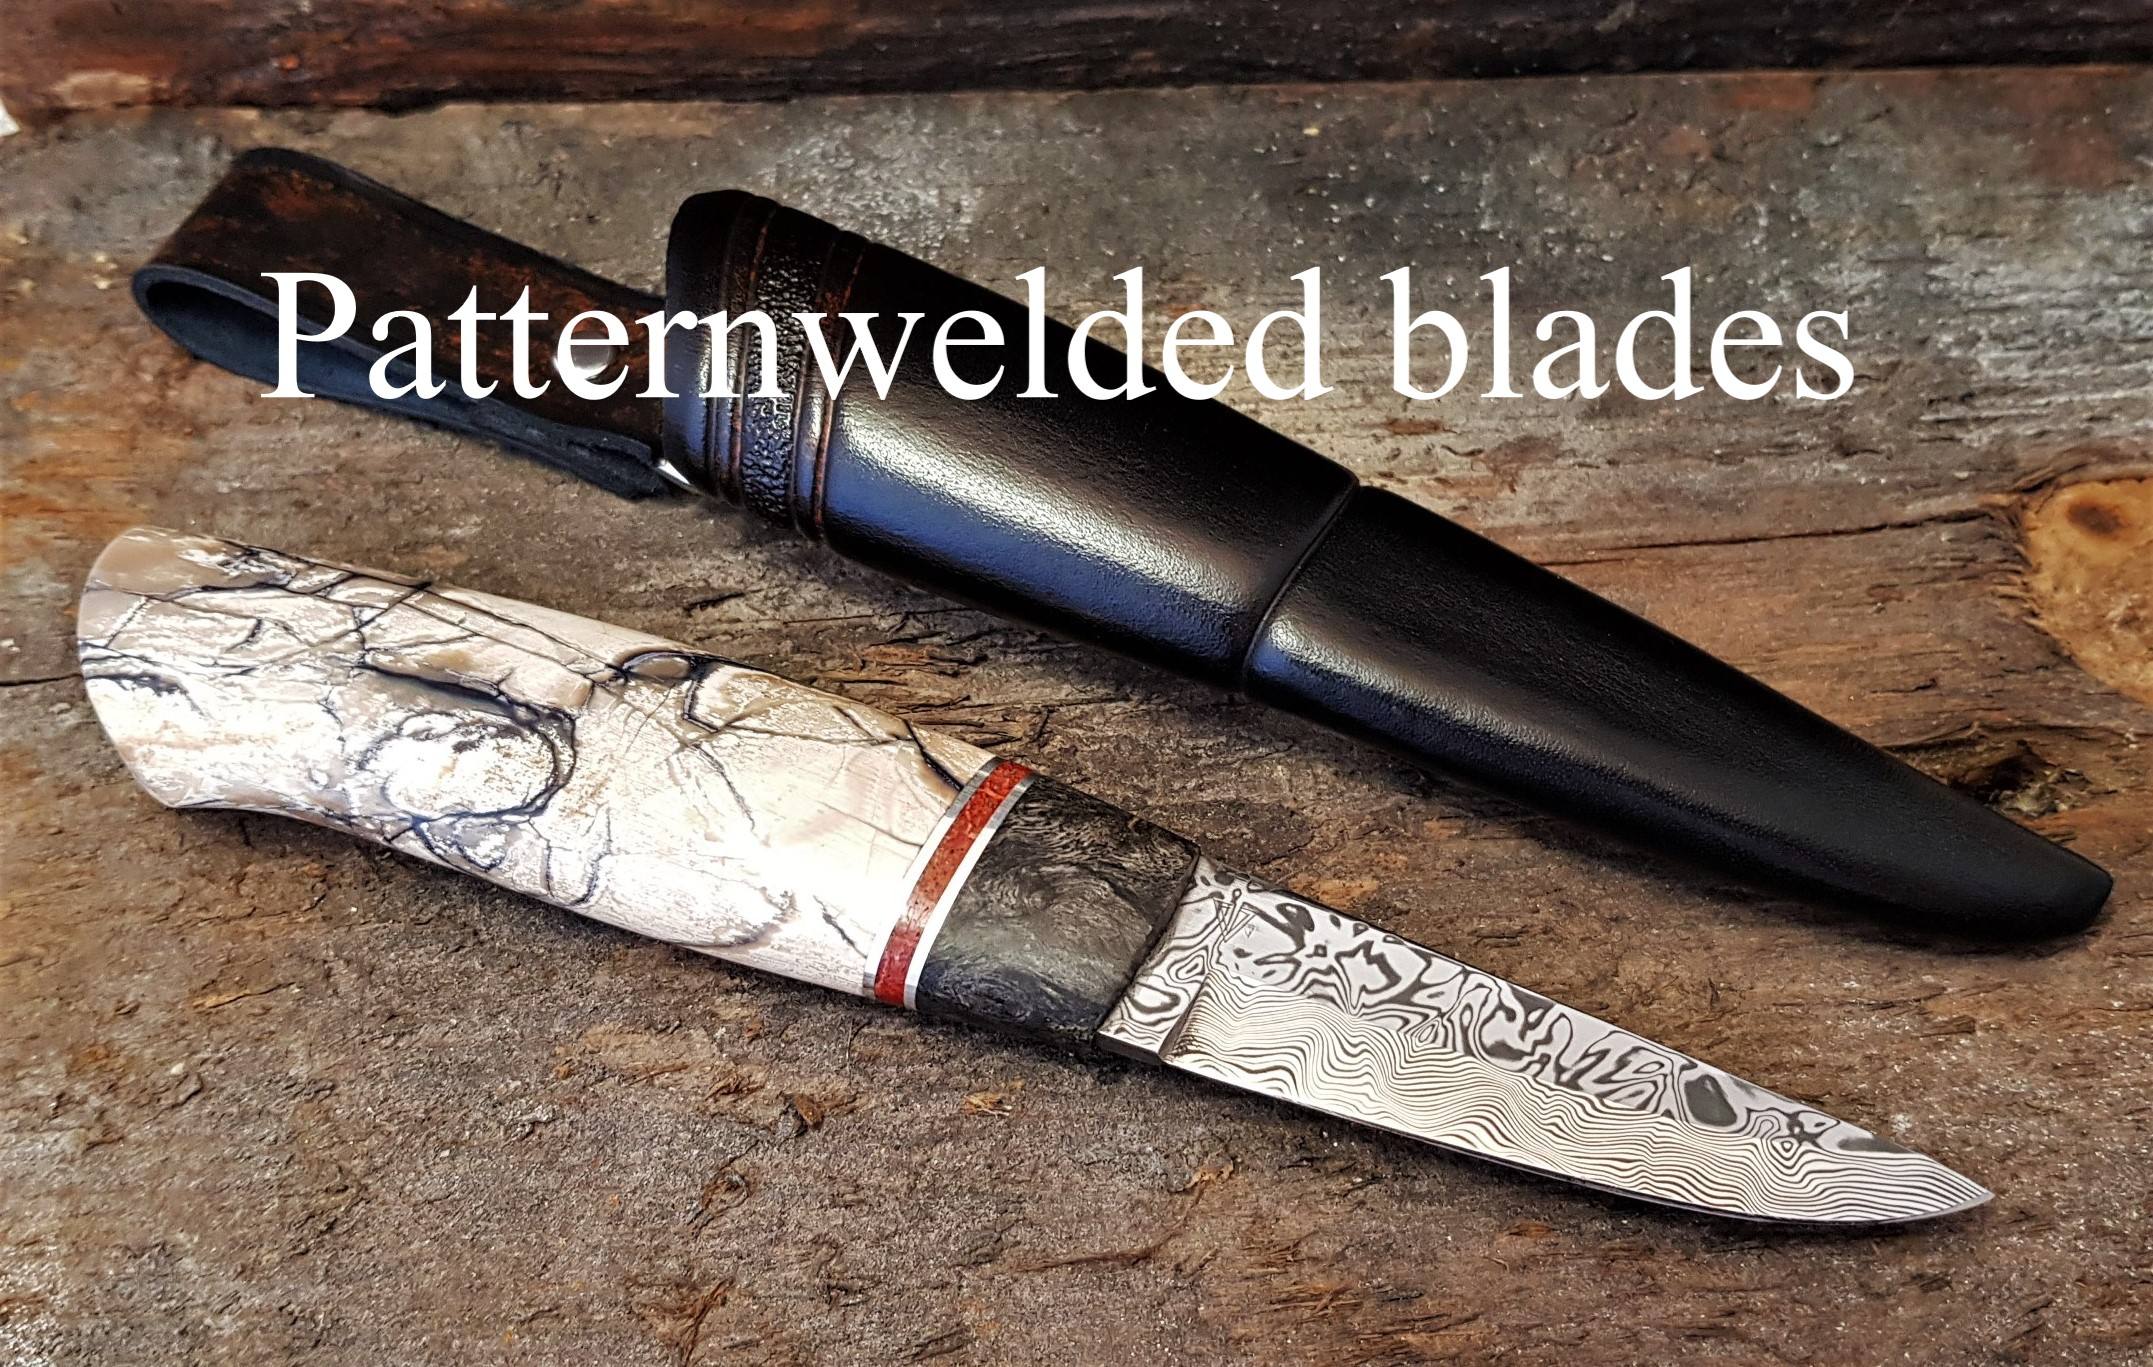 Patternwelded blades